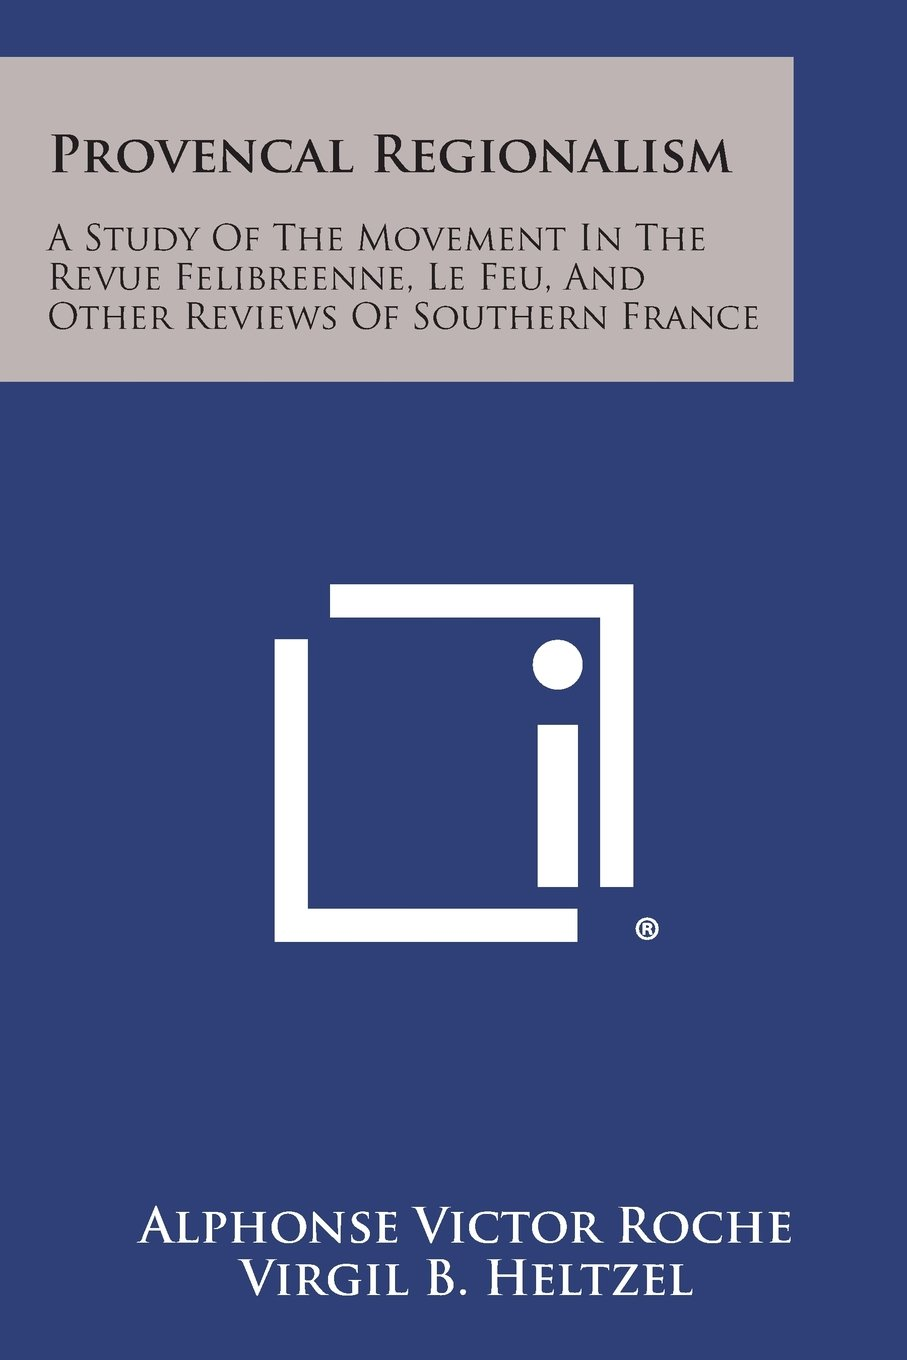 Provencal Regionalism: A Study of the Movement in the Revue Felibreenne, Le Feu, and Other Reviews of Southern France ebook